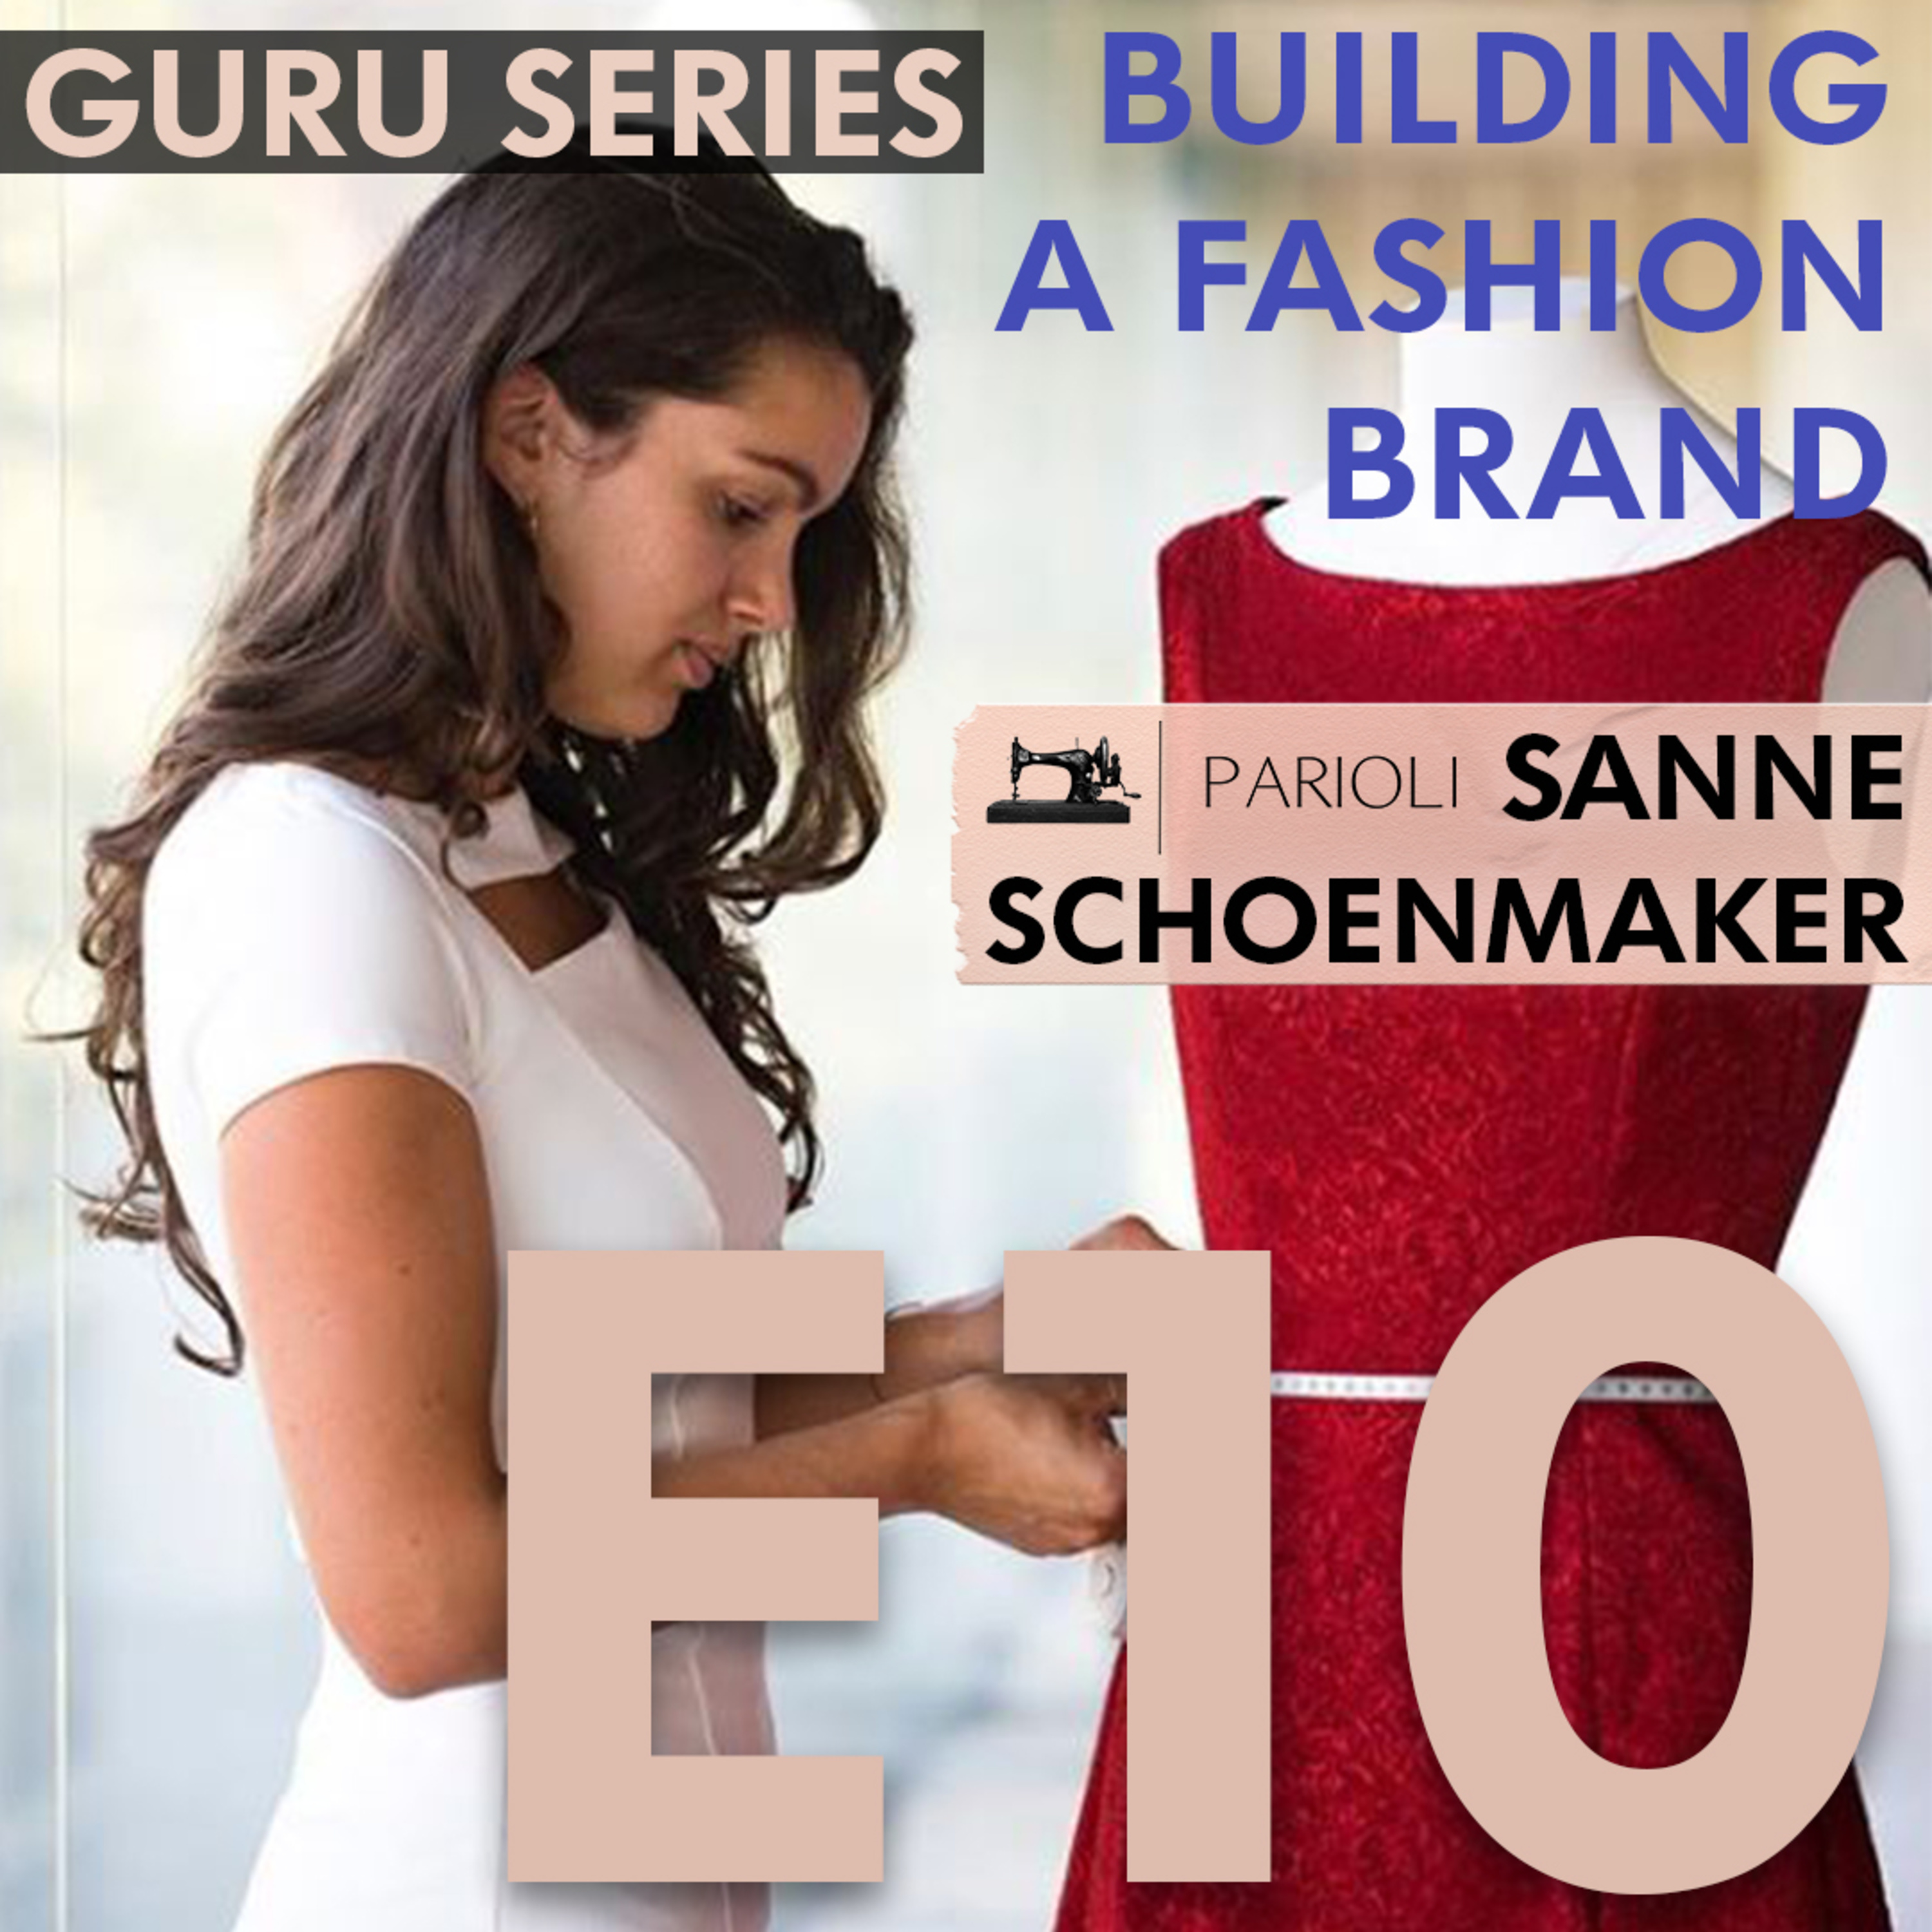 Building a Fashion Brand: Challenges, Tips, and Thoughts on The Industry